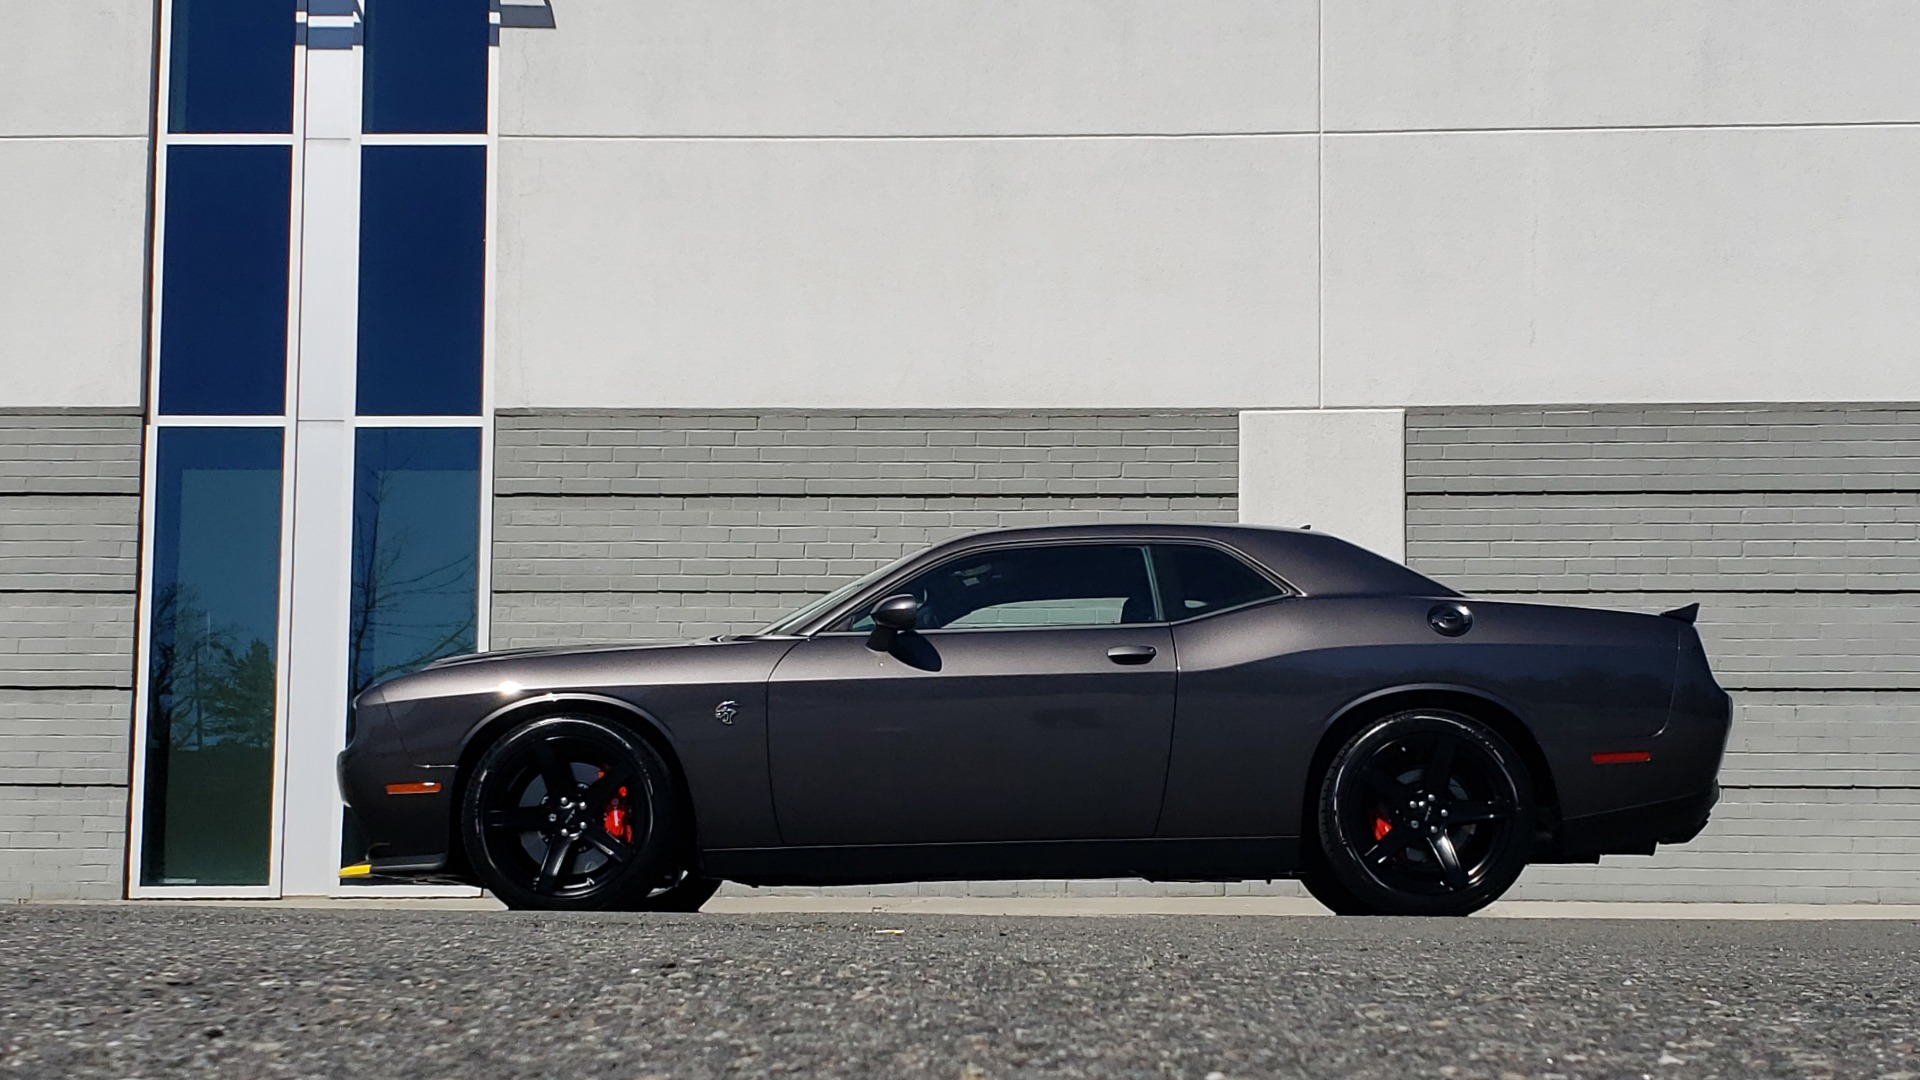 Used 2020 Dodge CHALLENGER SRT HELLCAT (717HP) / NAV / AUTO / CLOTH / REARVIEW / LOW MILES for sale $64,999 at Formula Imports in Charlotte NC 28227 4